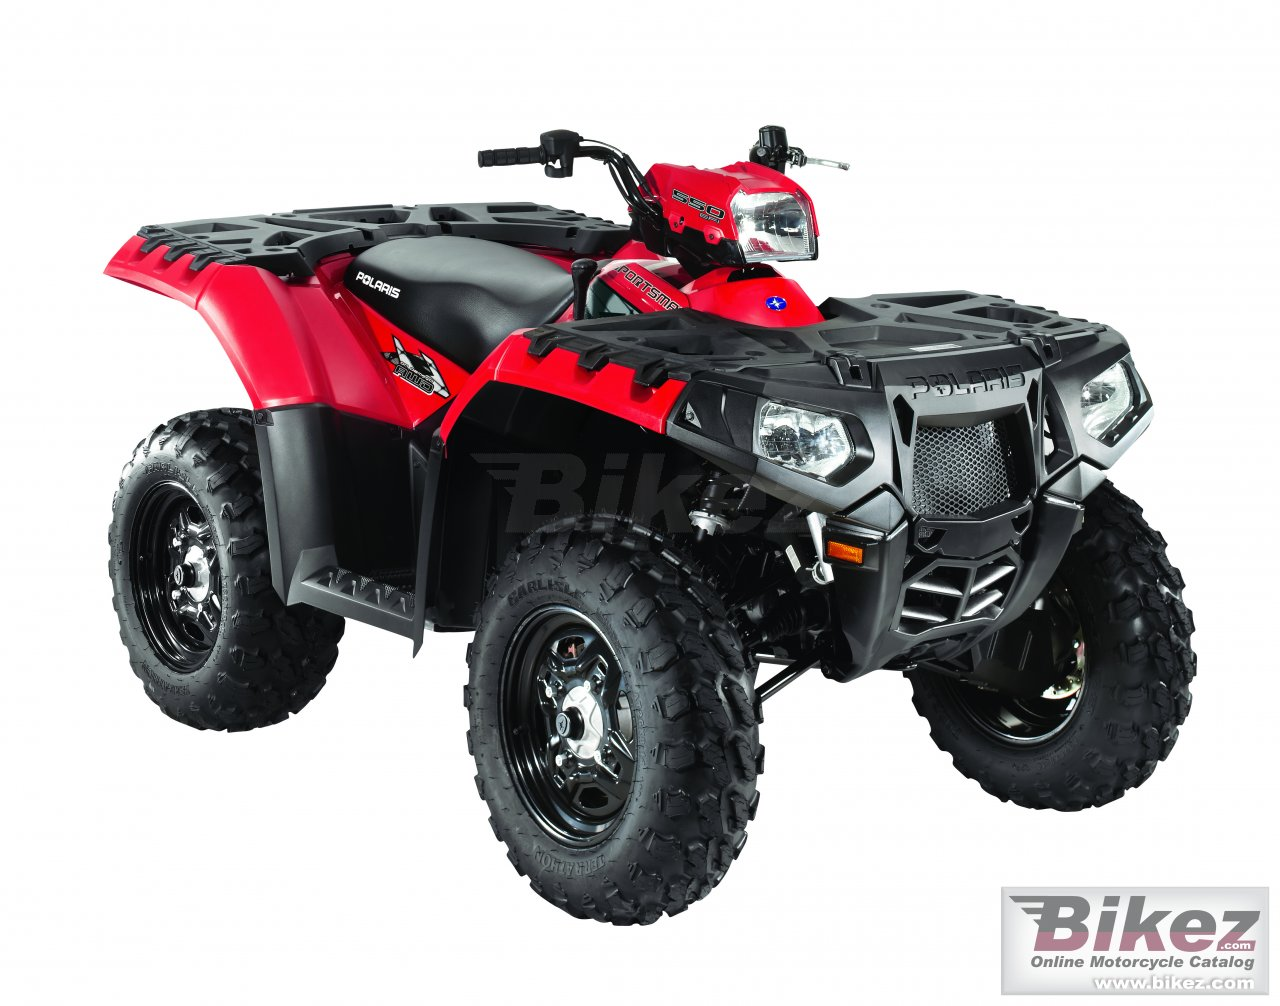 Big Polaris sportsman 550 picture and wallpaper from Bikez.com